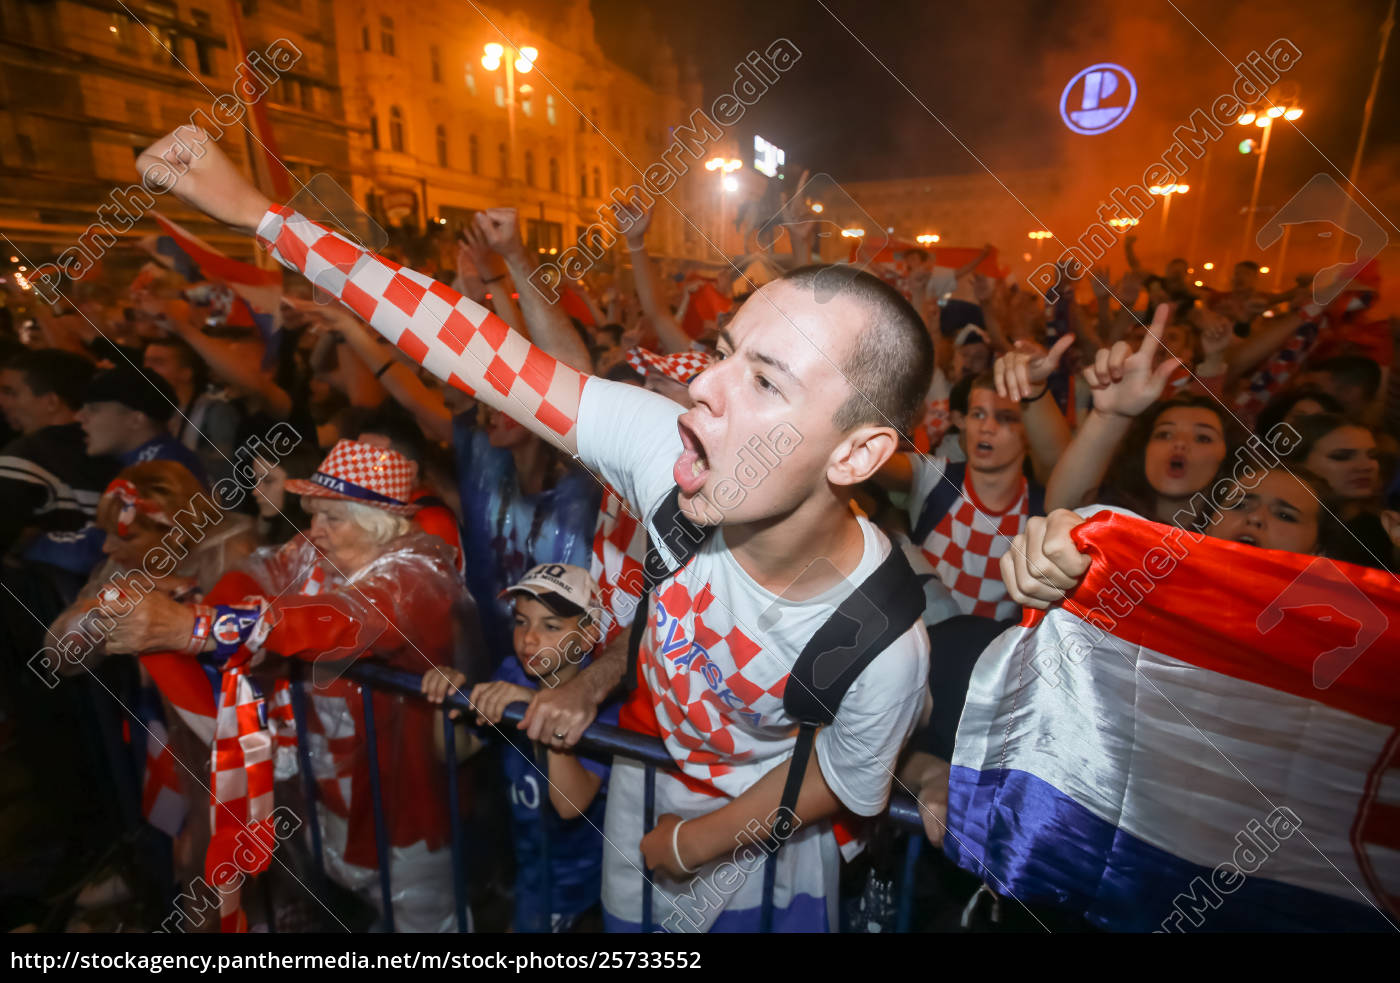 Rights-managed image 25733552 - Croatian fans